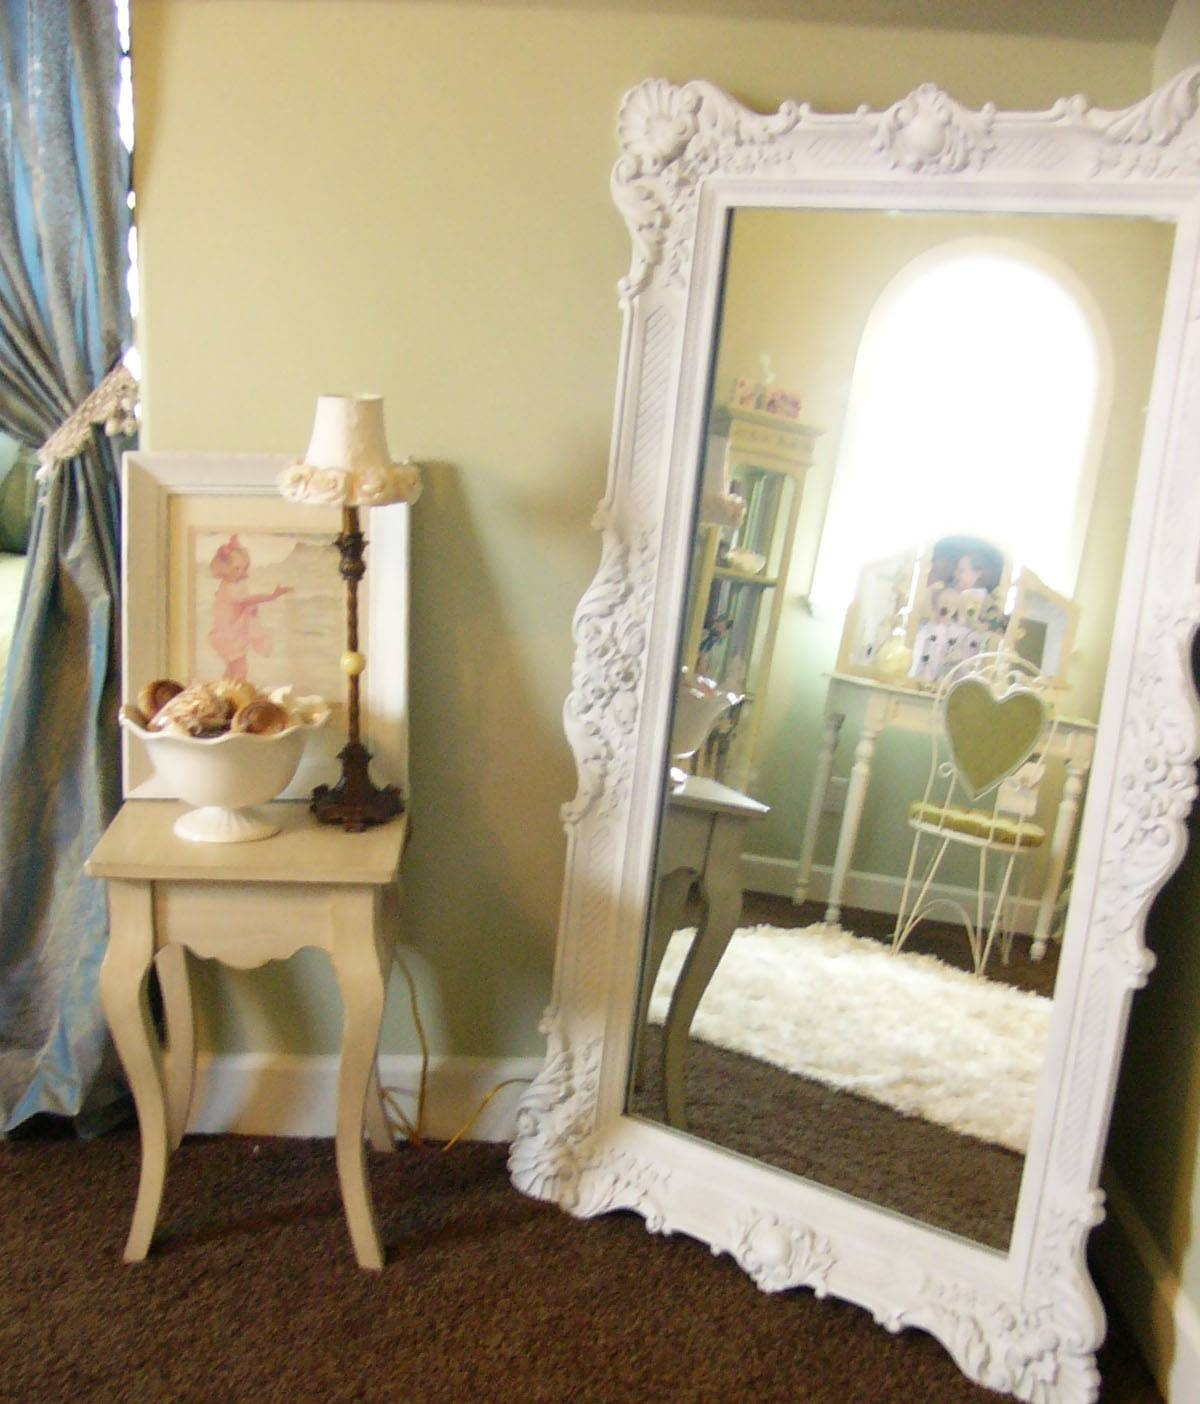 Full Length Mirror Free Standing | Vanity Decoration within Large Free Standing Mirrors (Image 7 of 15)